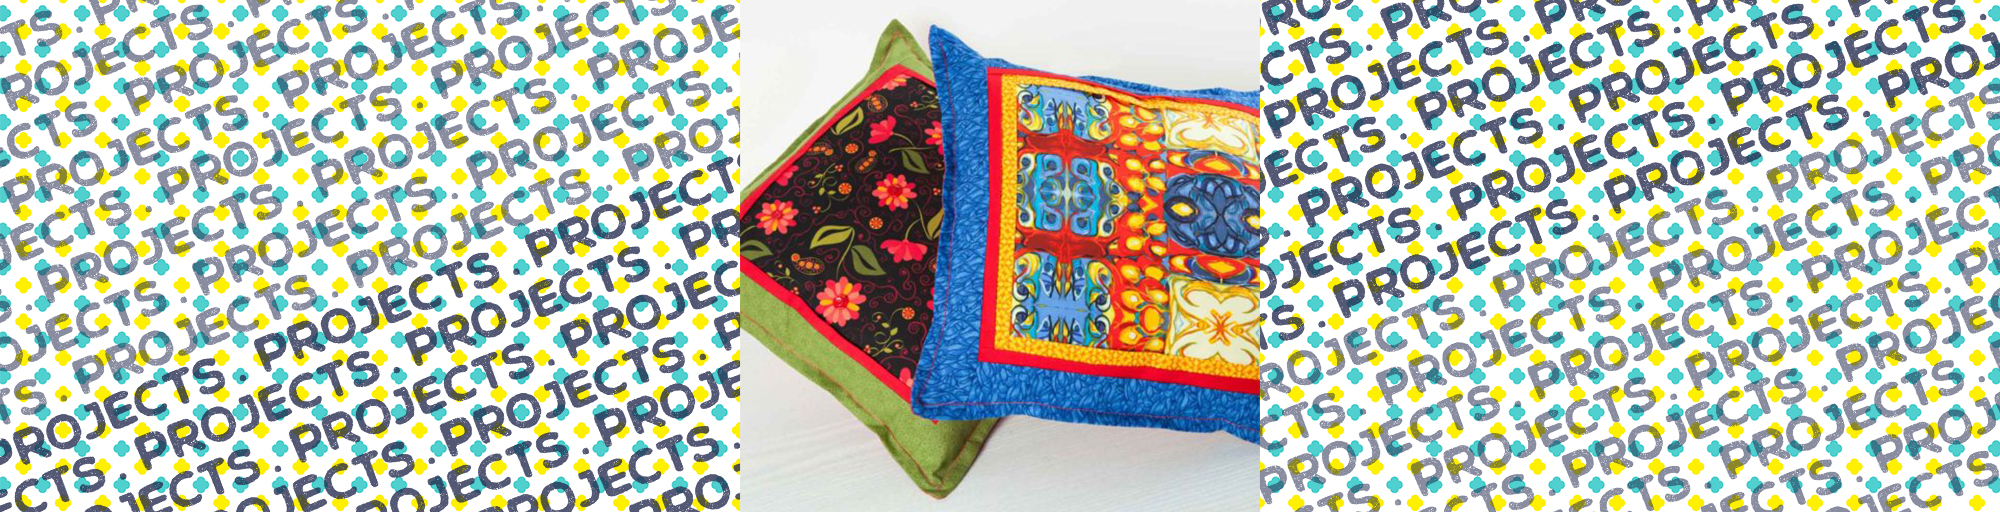 janome sewing project diy cushion